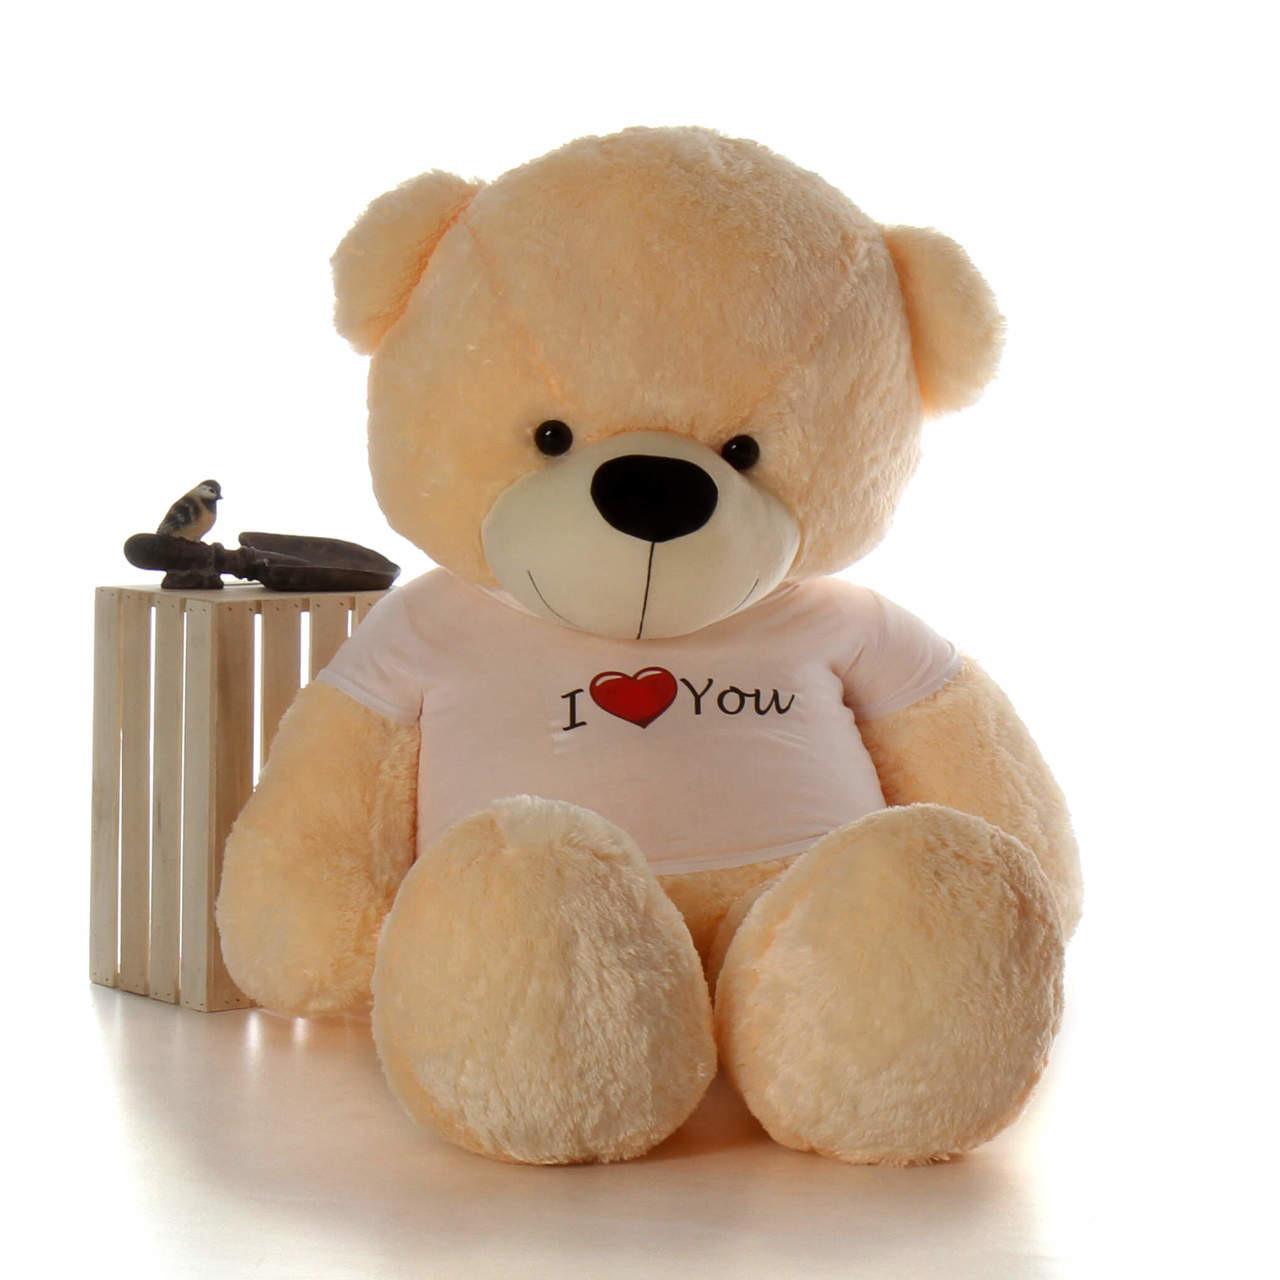 72in Best Giant  Teddy for Valentine's Day Cream Cozy Cuddles with I Love You shirt